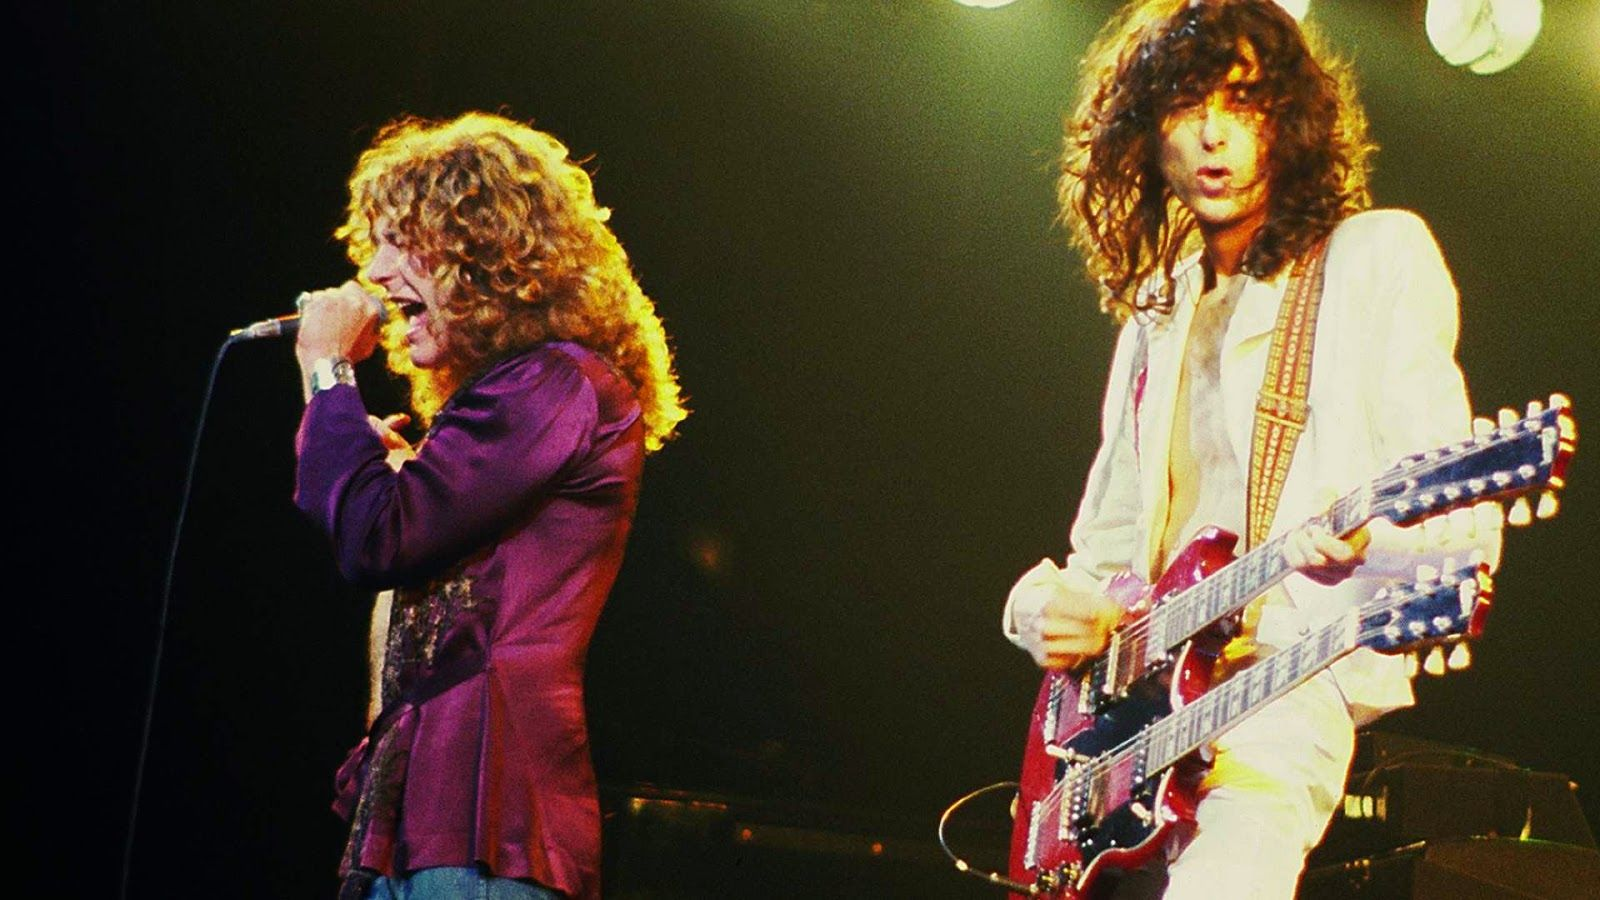 SURFREAK: Led Zeppelin - Whole Lotta Love e outros riffs